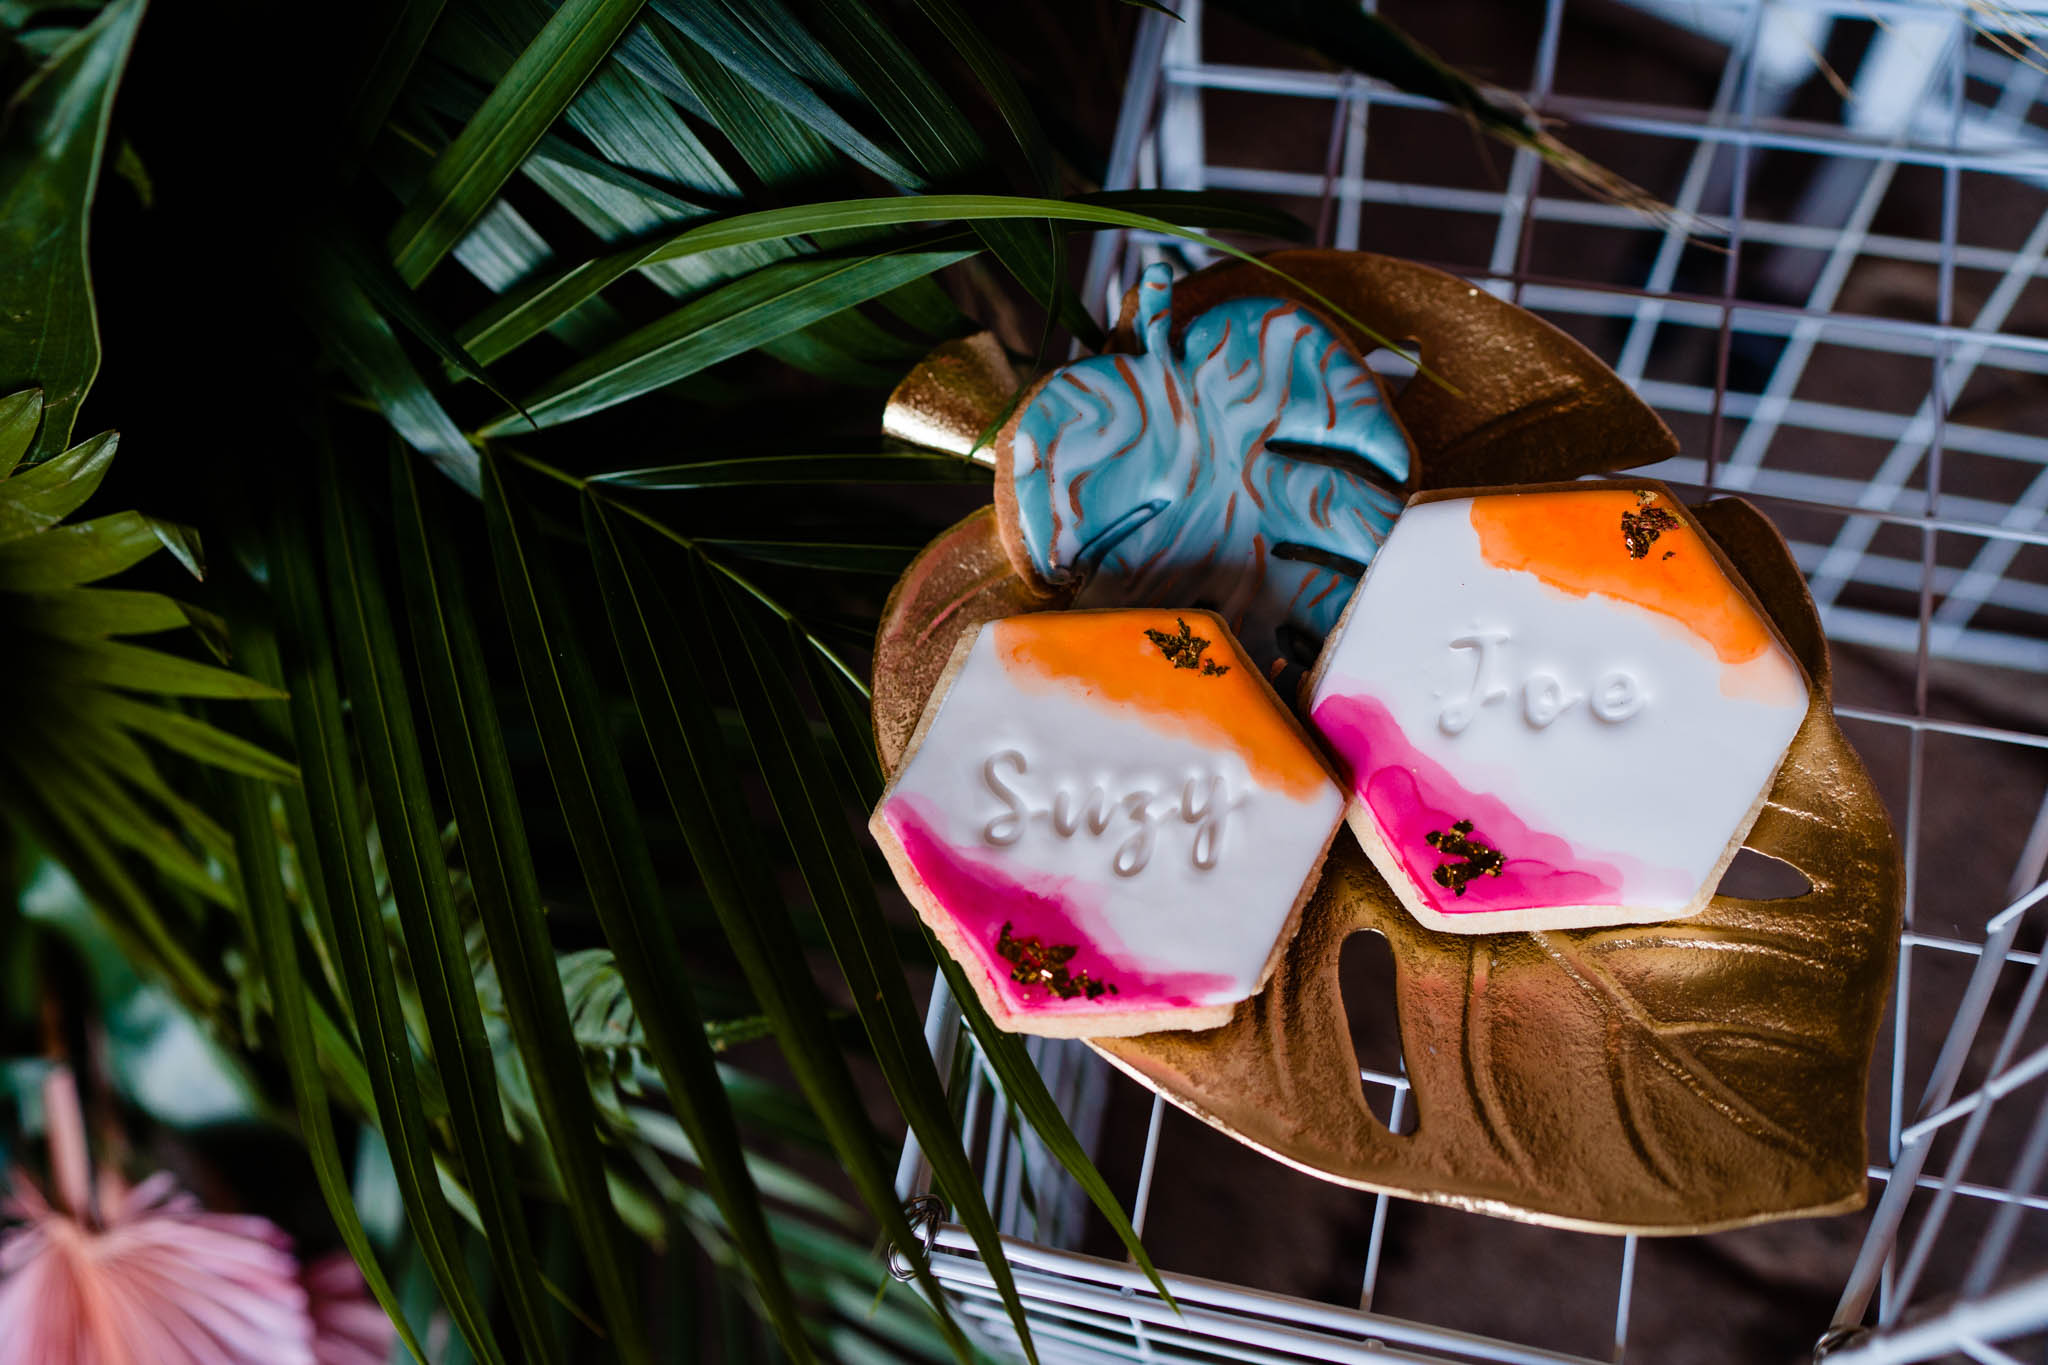 cookie wedding favours - colourful wedding cookies - modern tropical wedding - modern wedding - modern bride - east midlands wedding planner